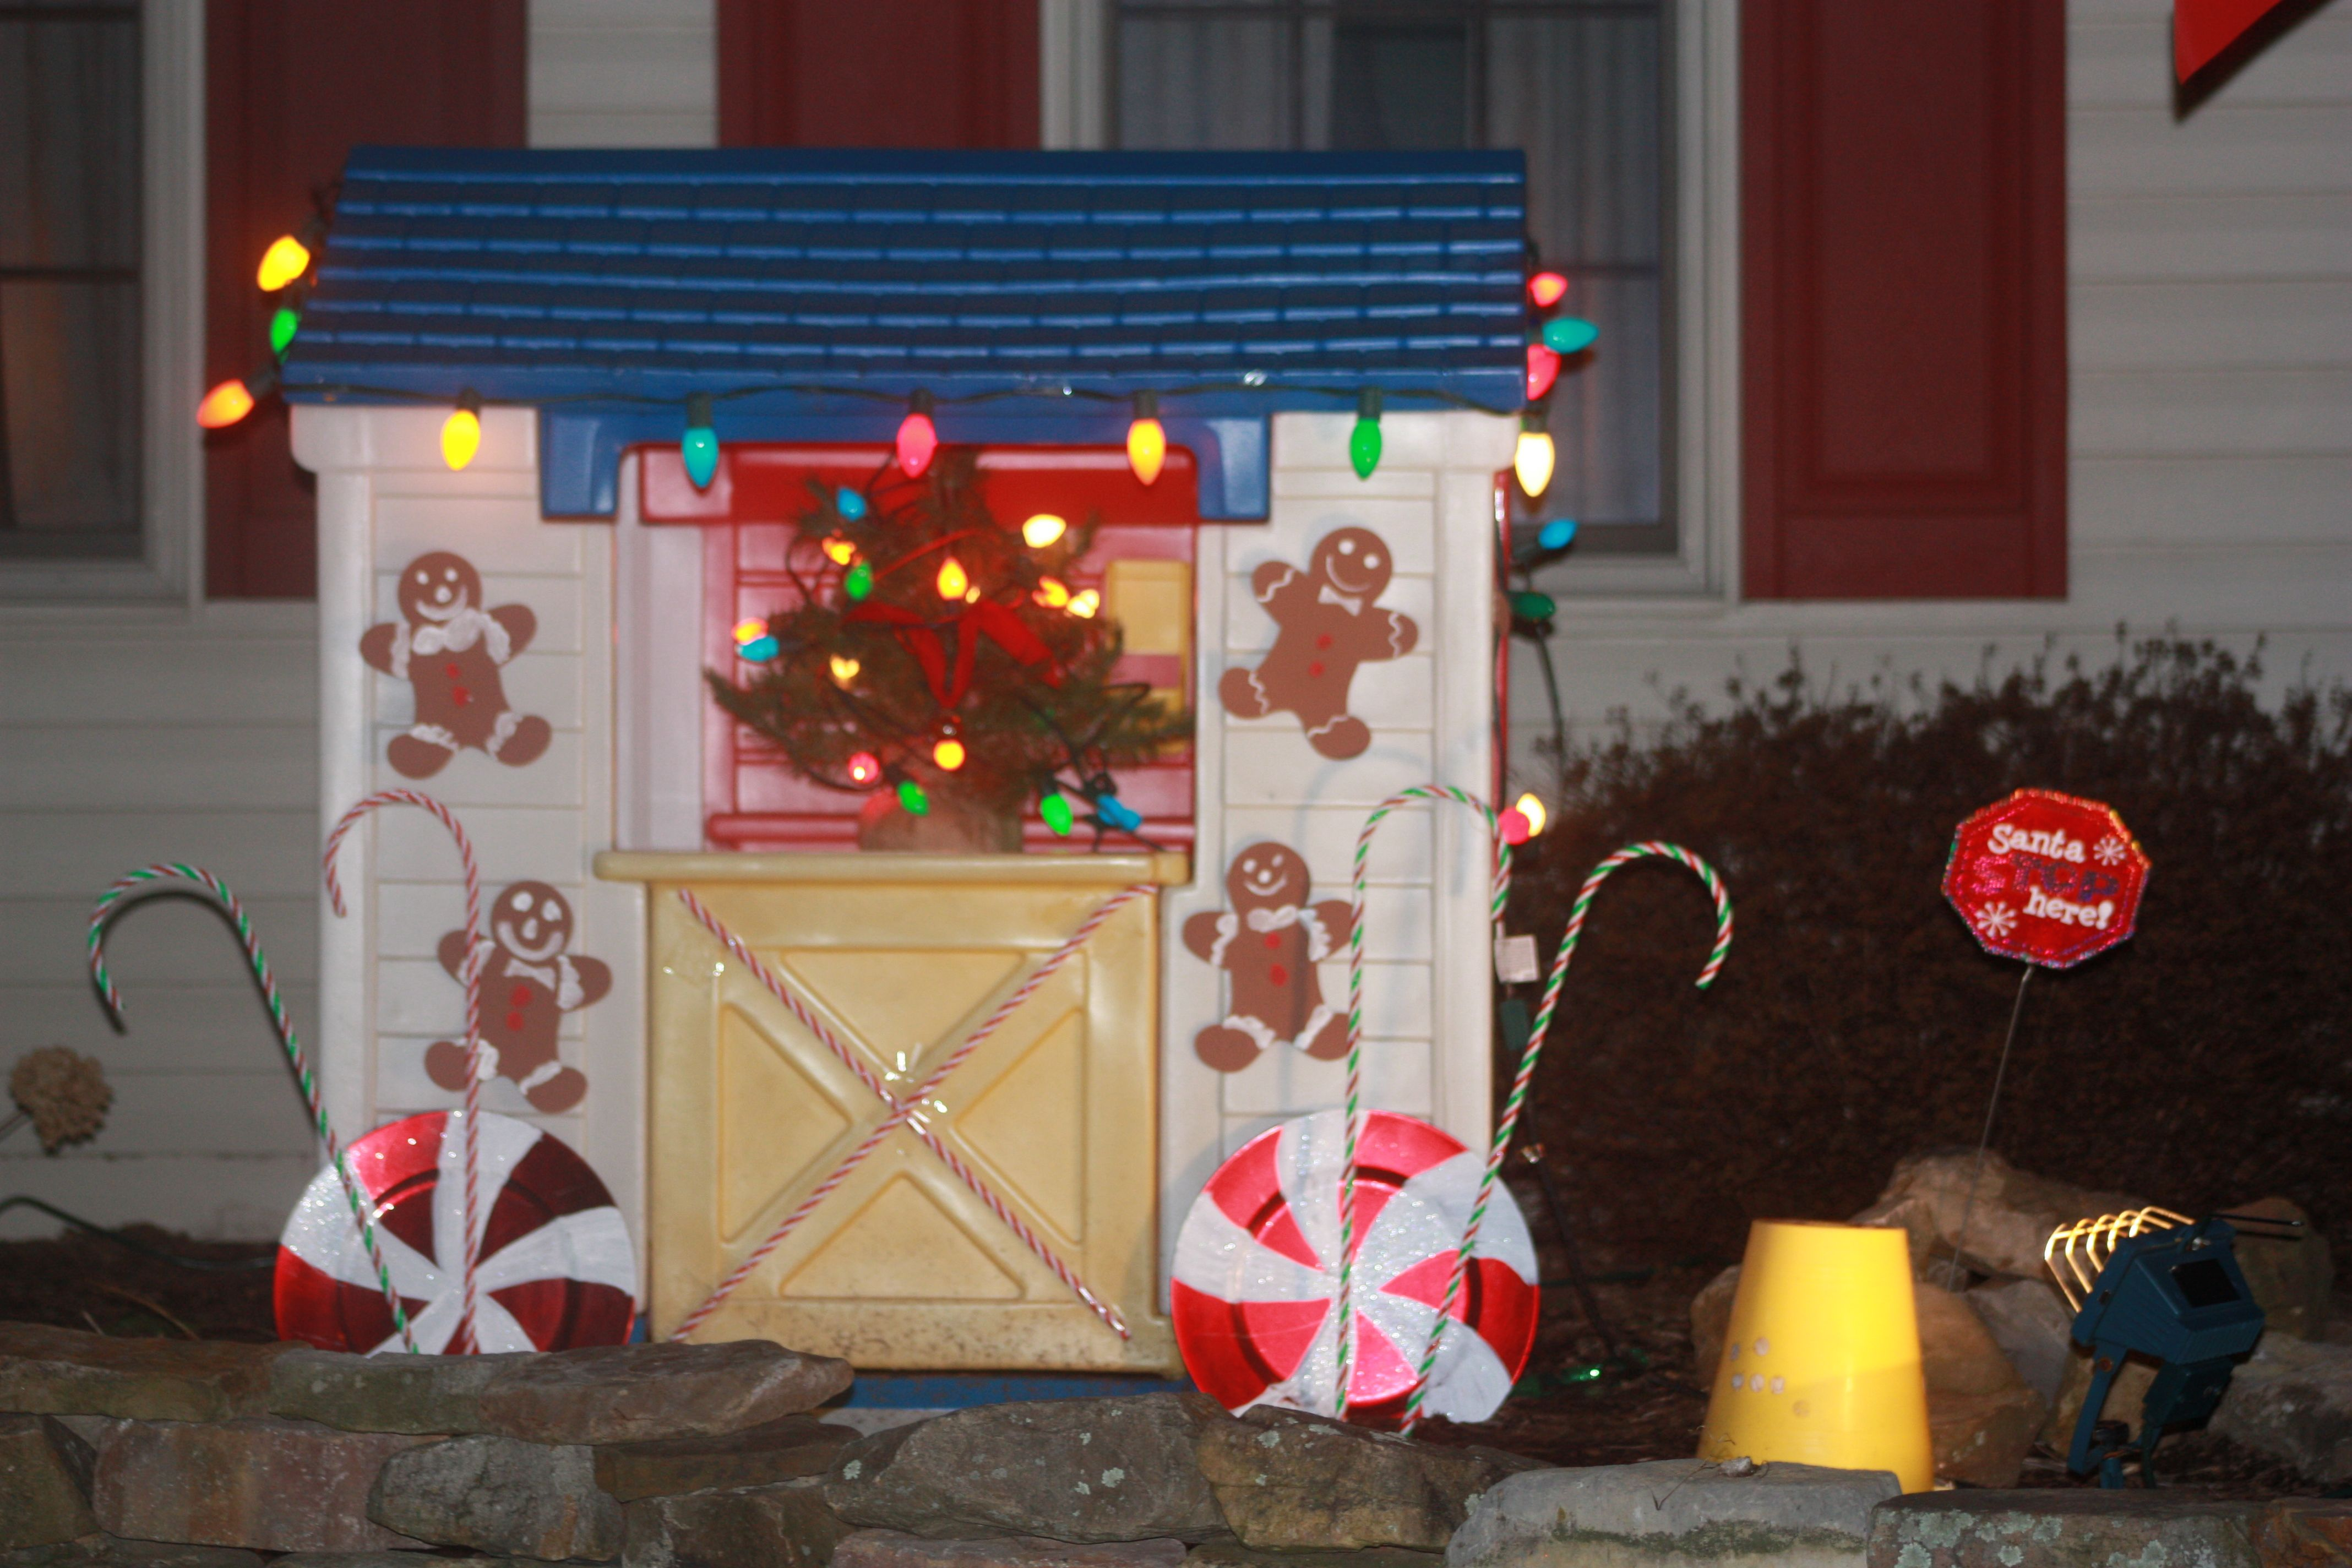 Holiday Decorating For The Little Tikes Playhouse Little Tikes Playhouse Christmas Gingerbread House Holiday Decor